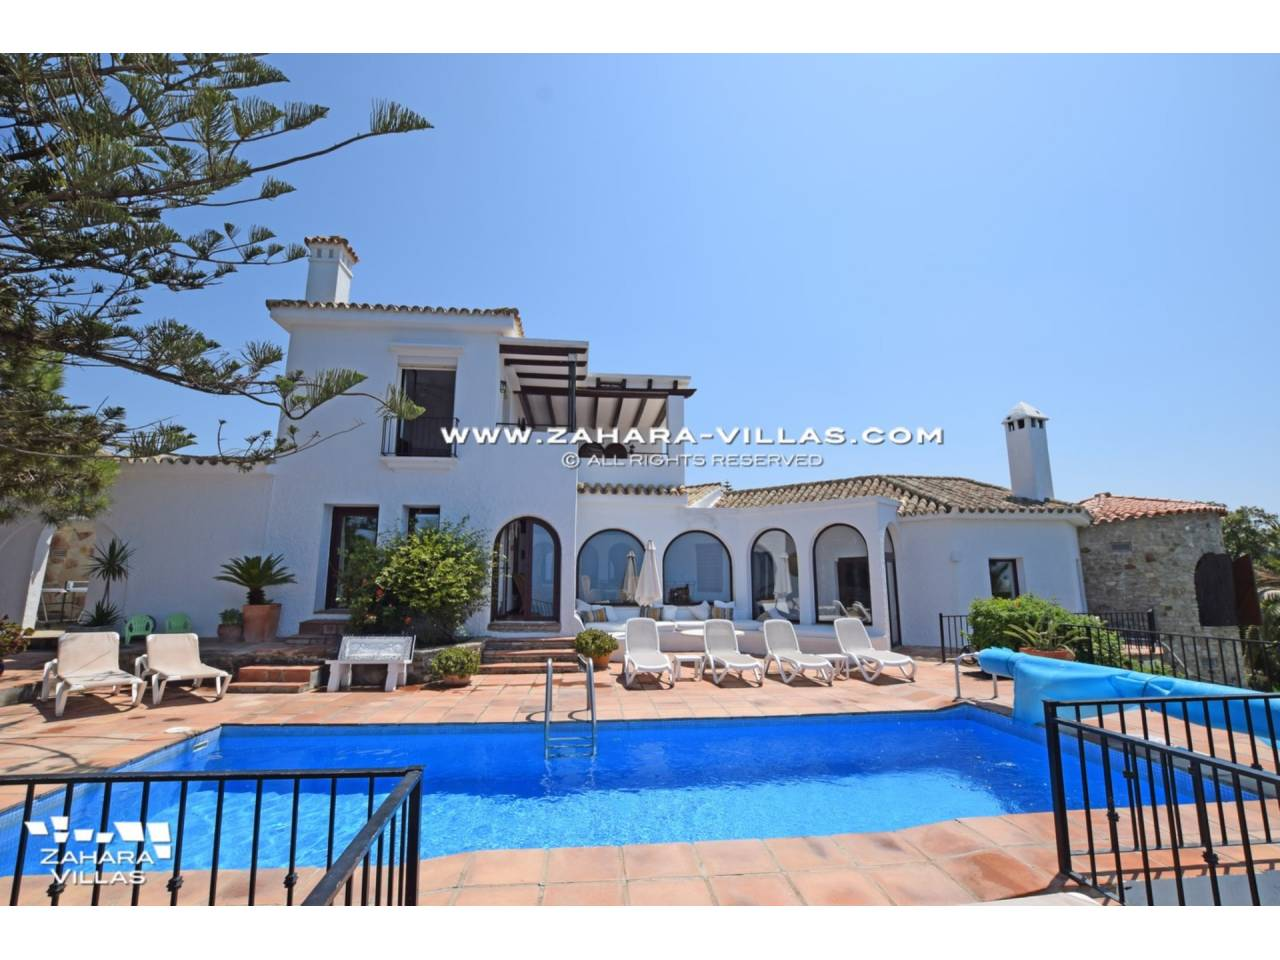 Imagen 1 de Wonderful Villa for sale in Atlanterra-Zahara de los Atunes